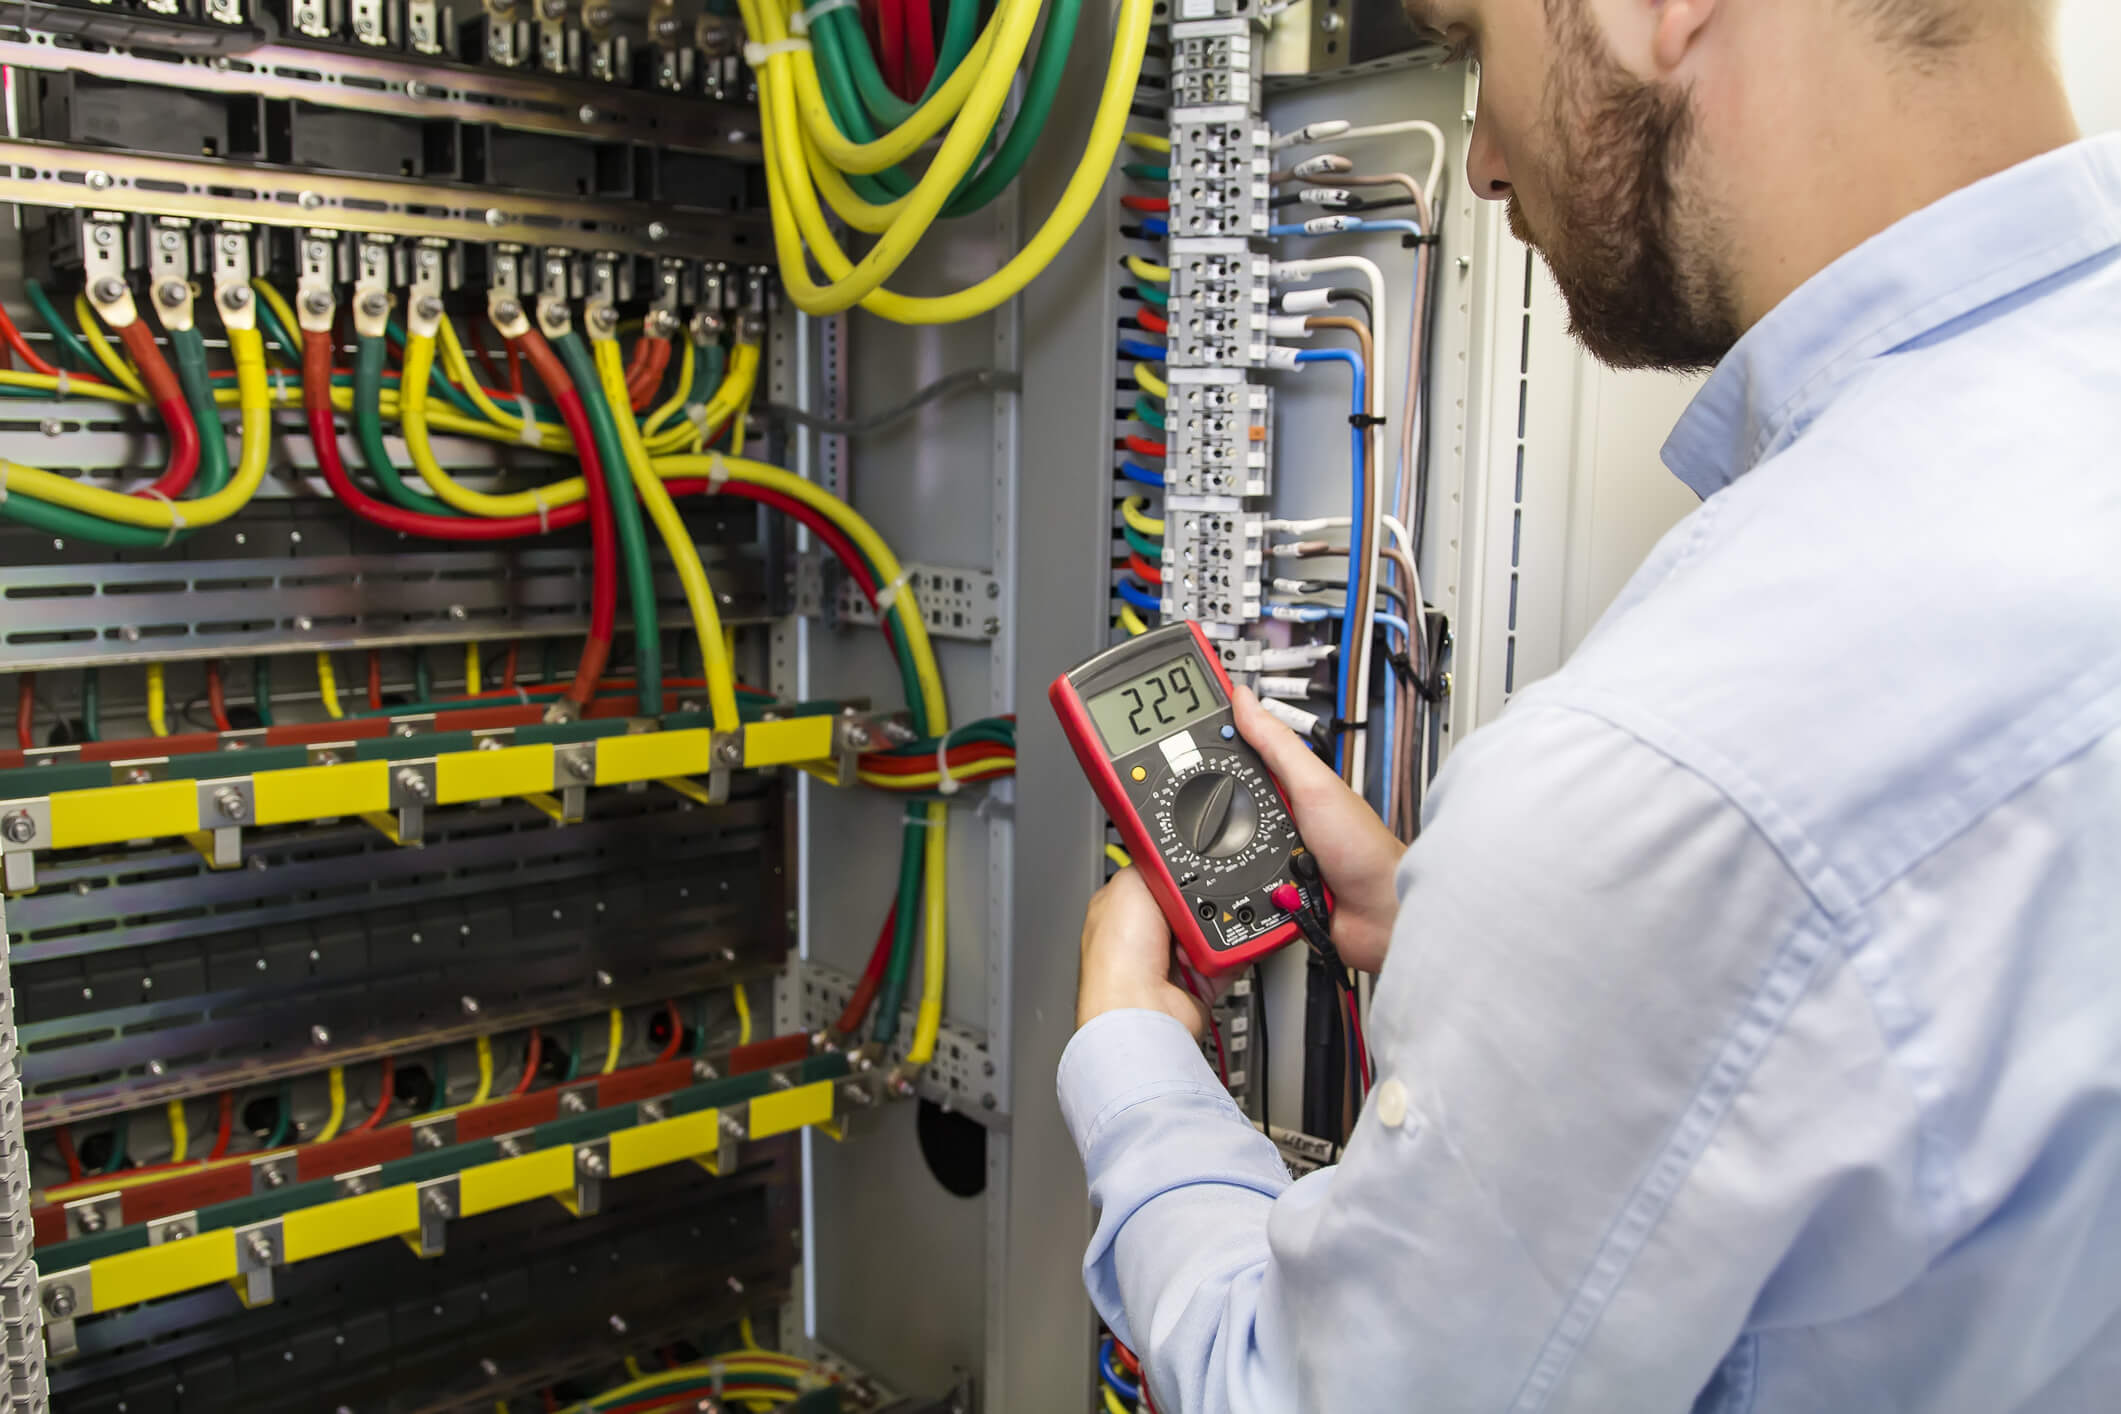 lectrician engineer testing cabling connection of high voltage power electric line.